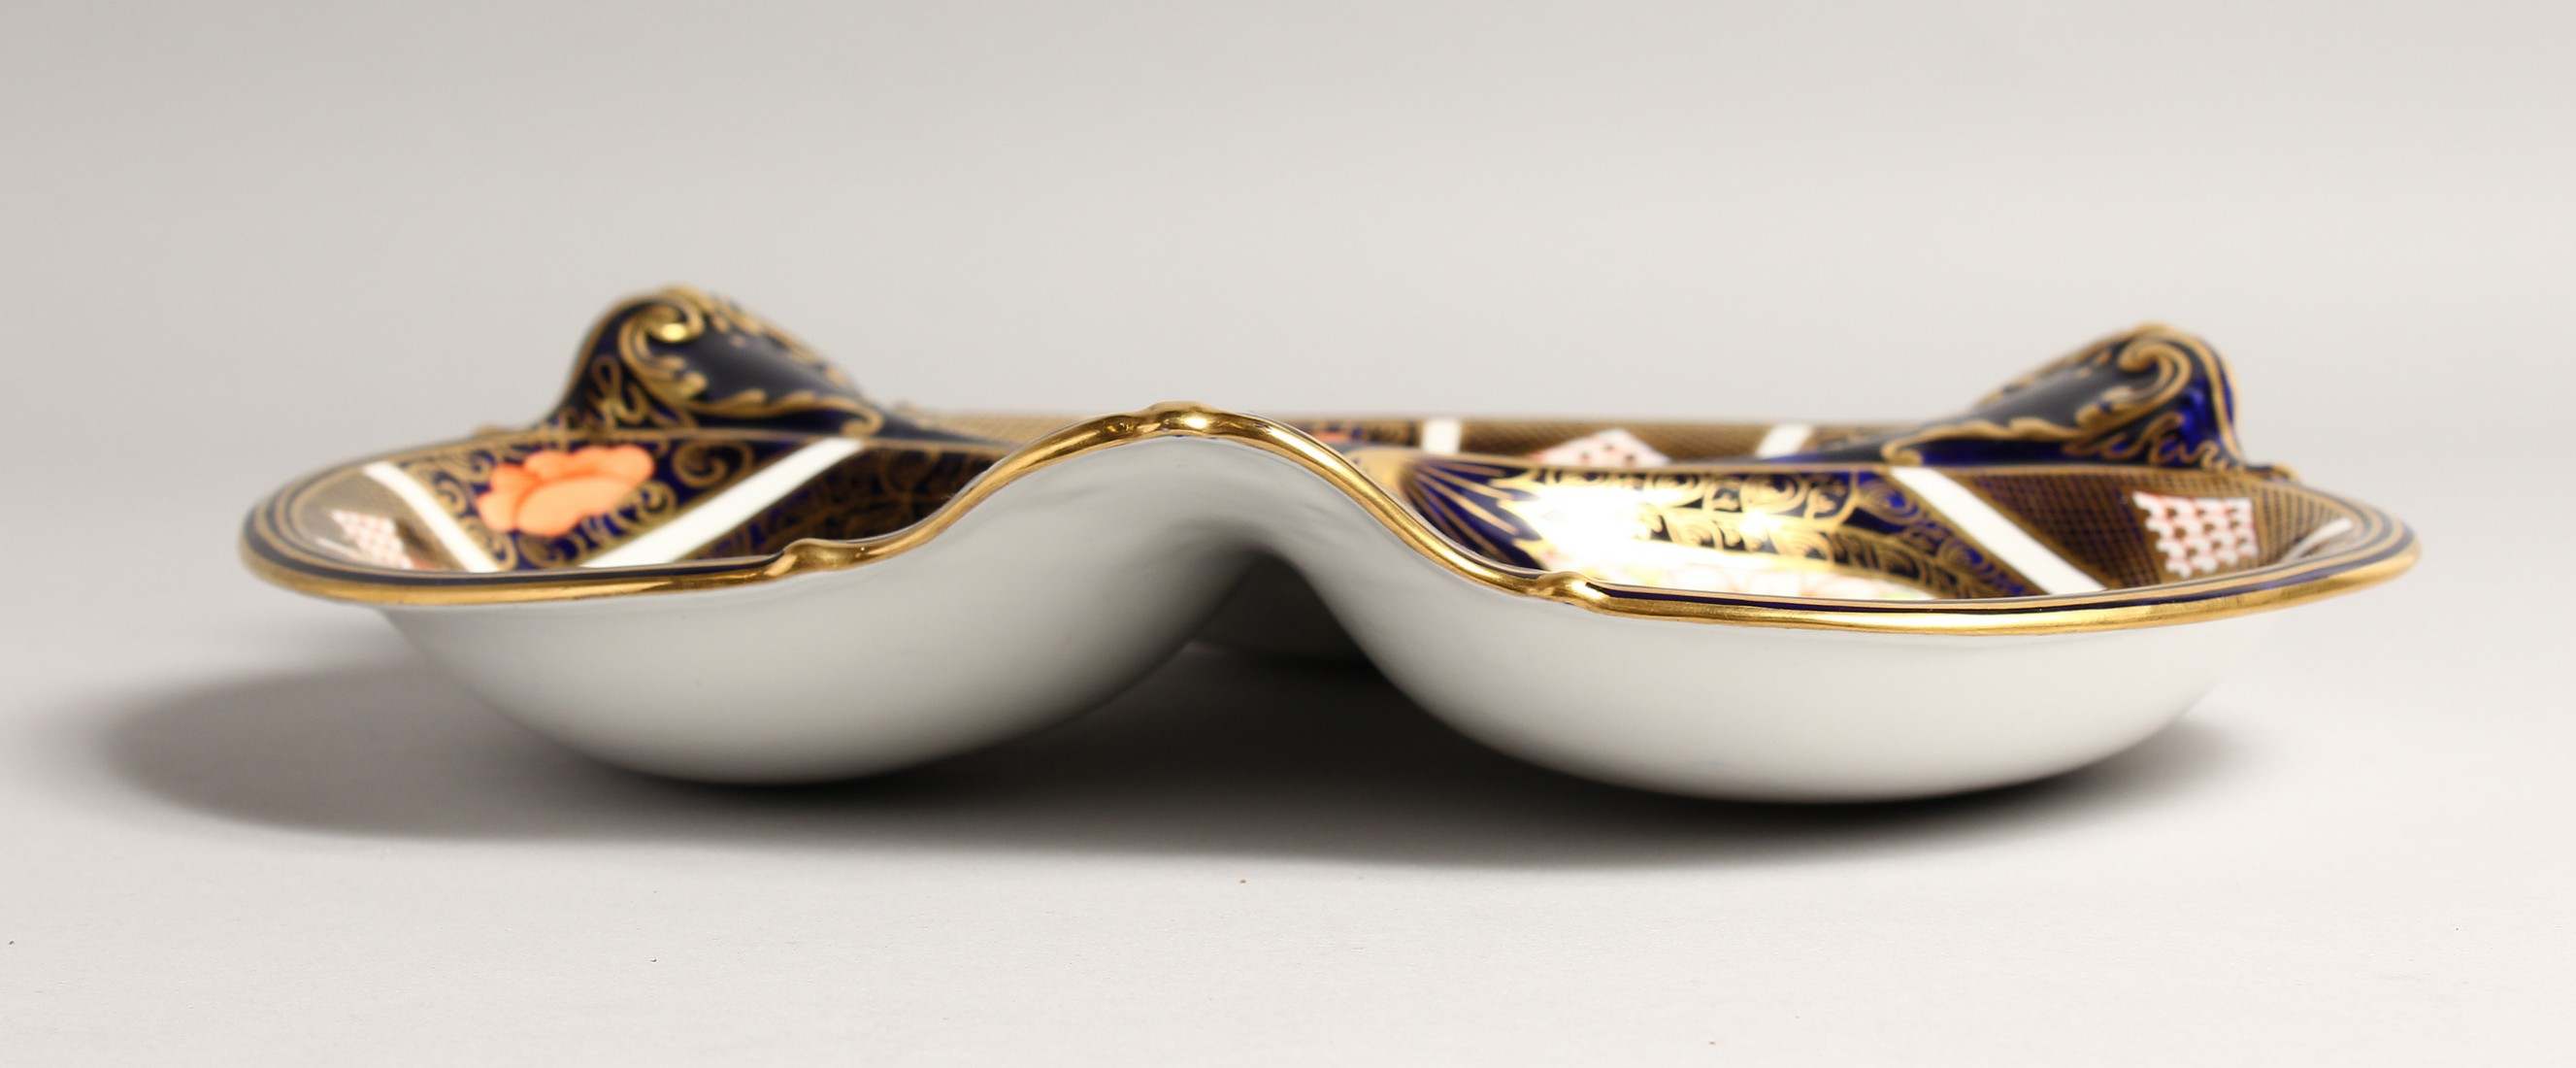 A ROYAL CROWN DERBY JAPAN PATTERN THREE DIVISION DISH. No. 1667 &1128 11ins wide. - Image 3 of 6